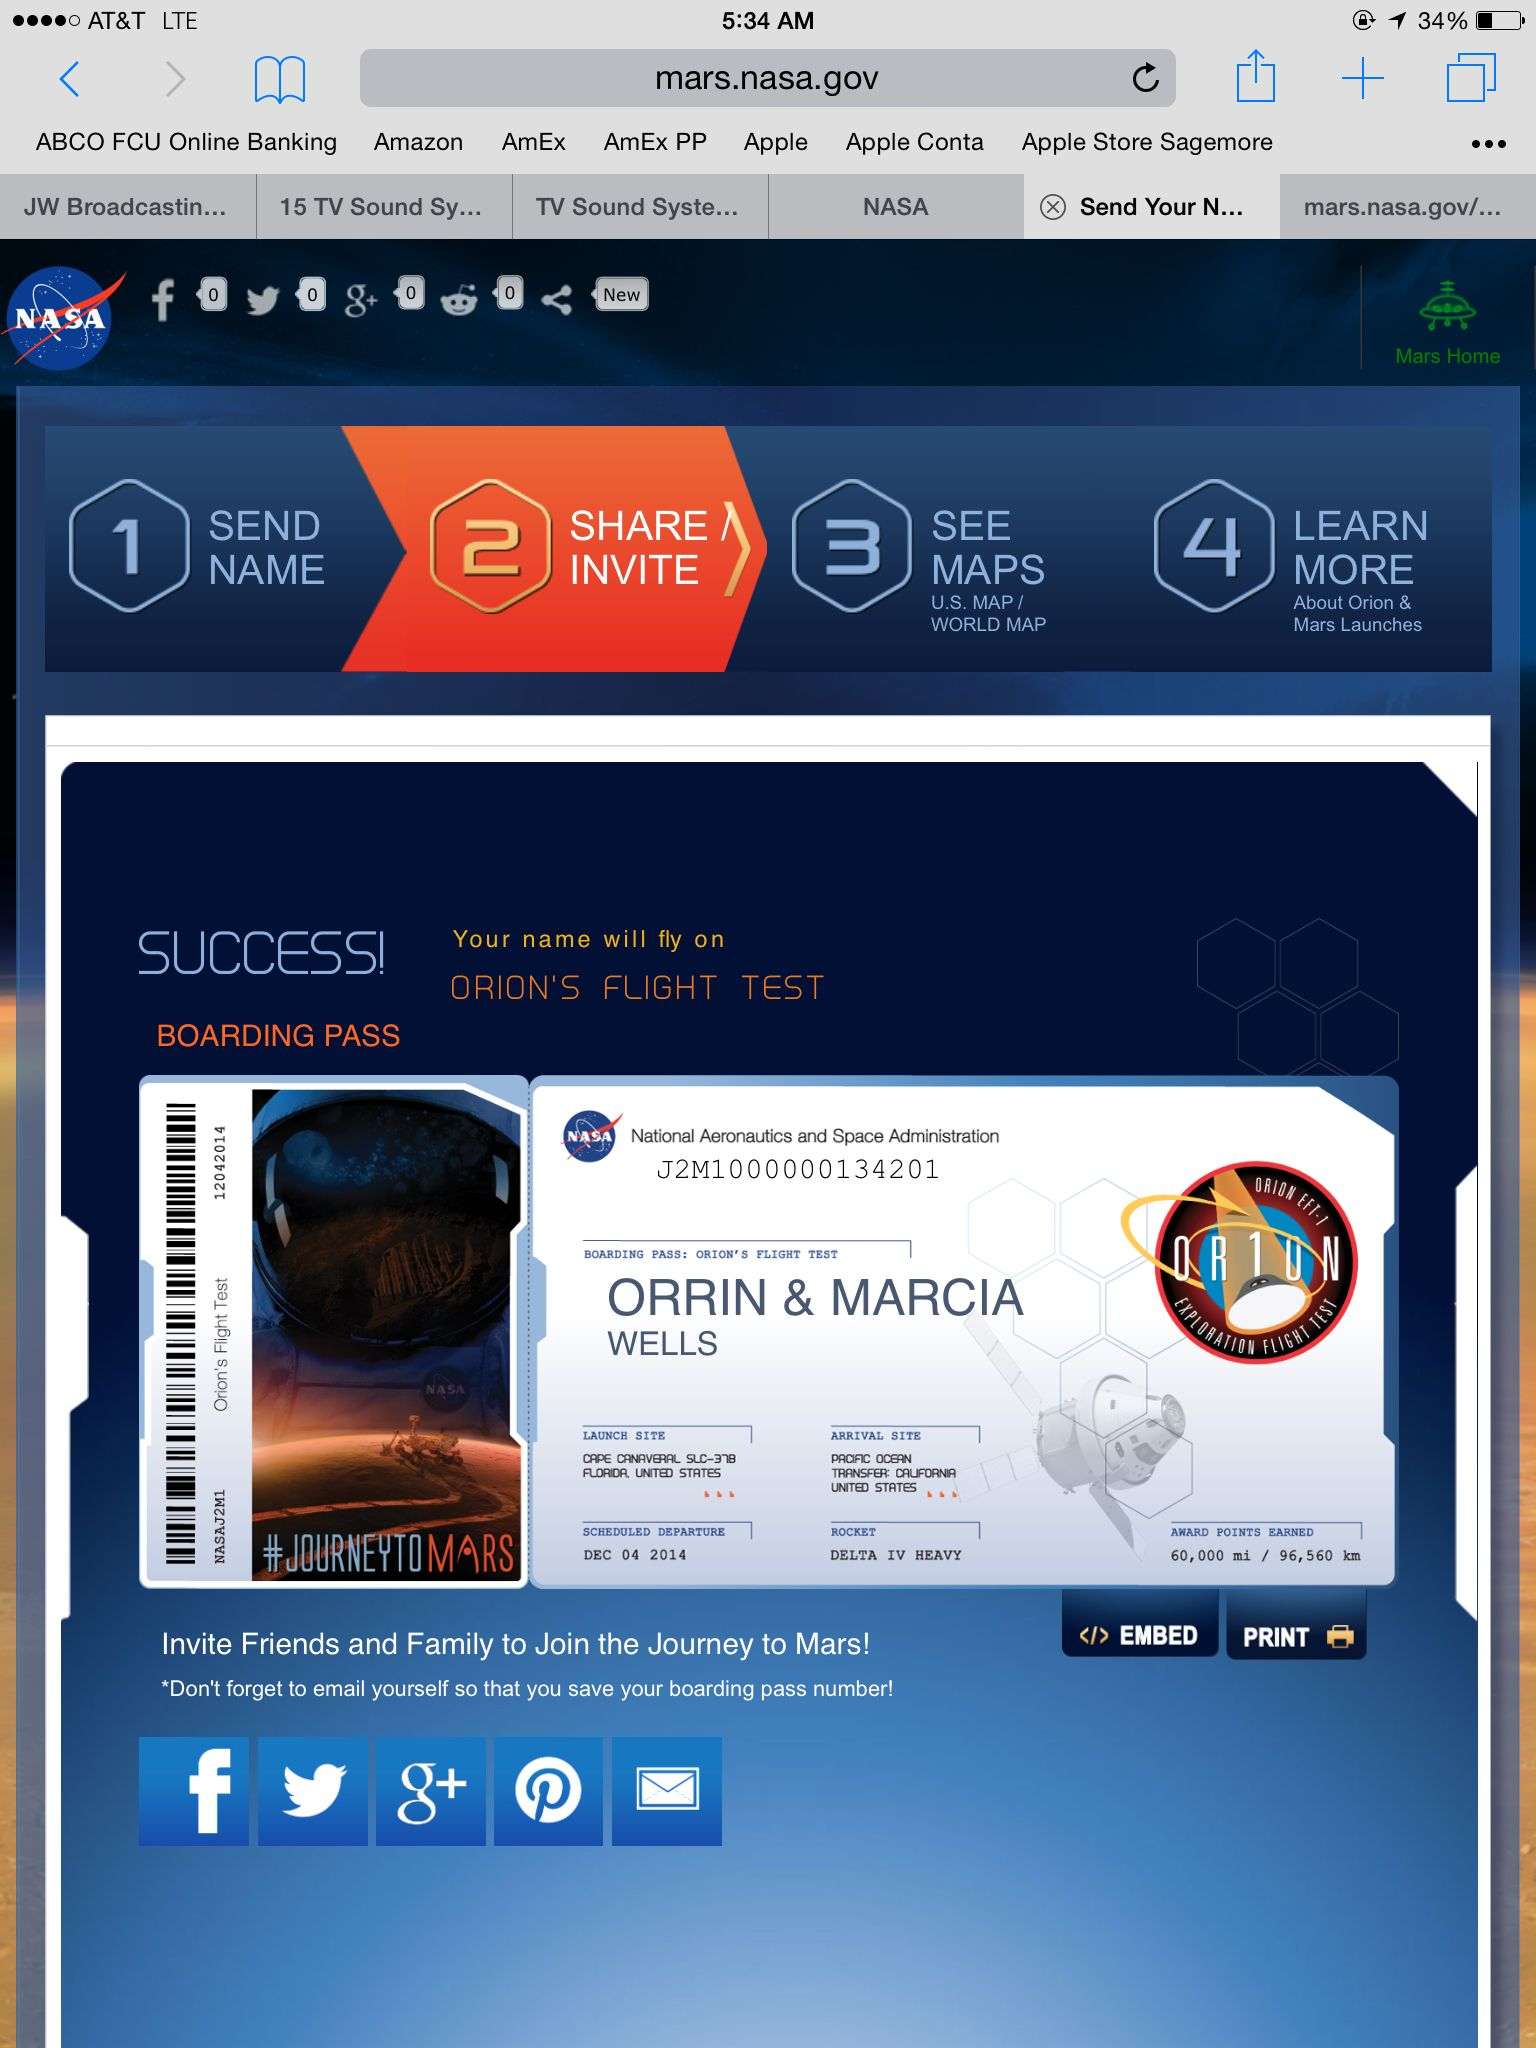 I Just Sent My Name To Fly On Orion S Flight Test Scheduled To